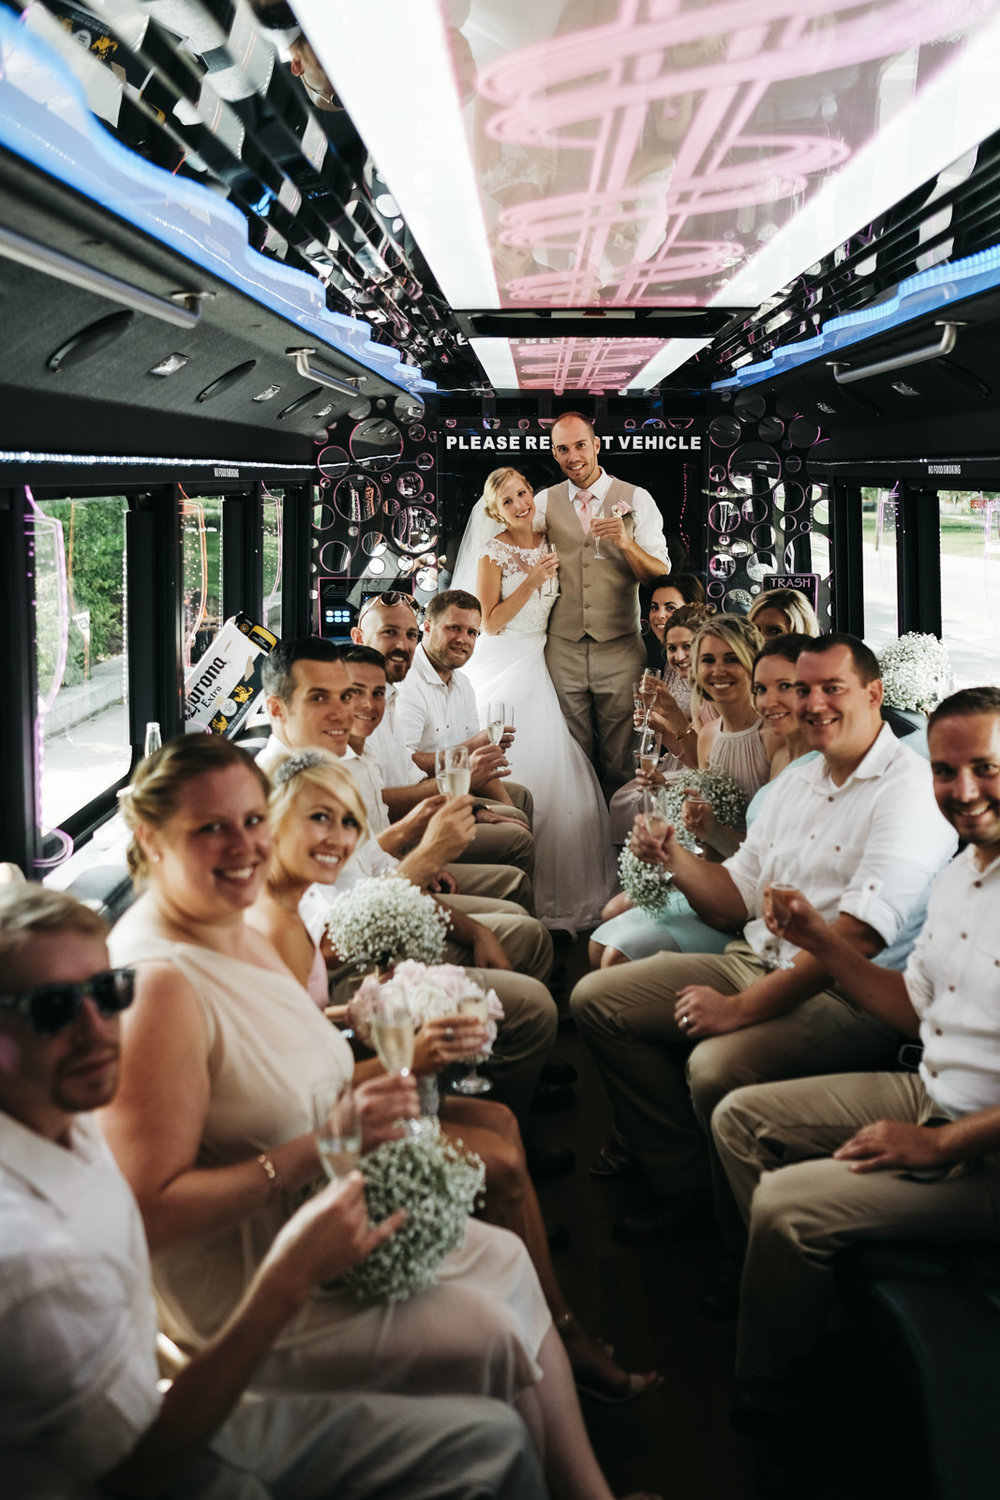 The bride and groom and bridal party of the party bus on the way to the ceremony.